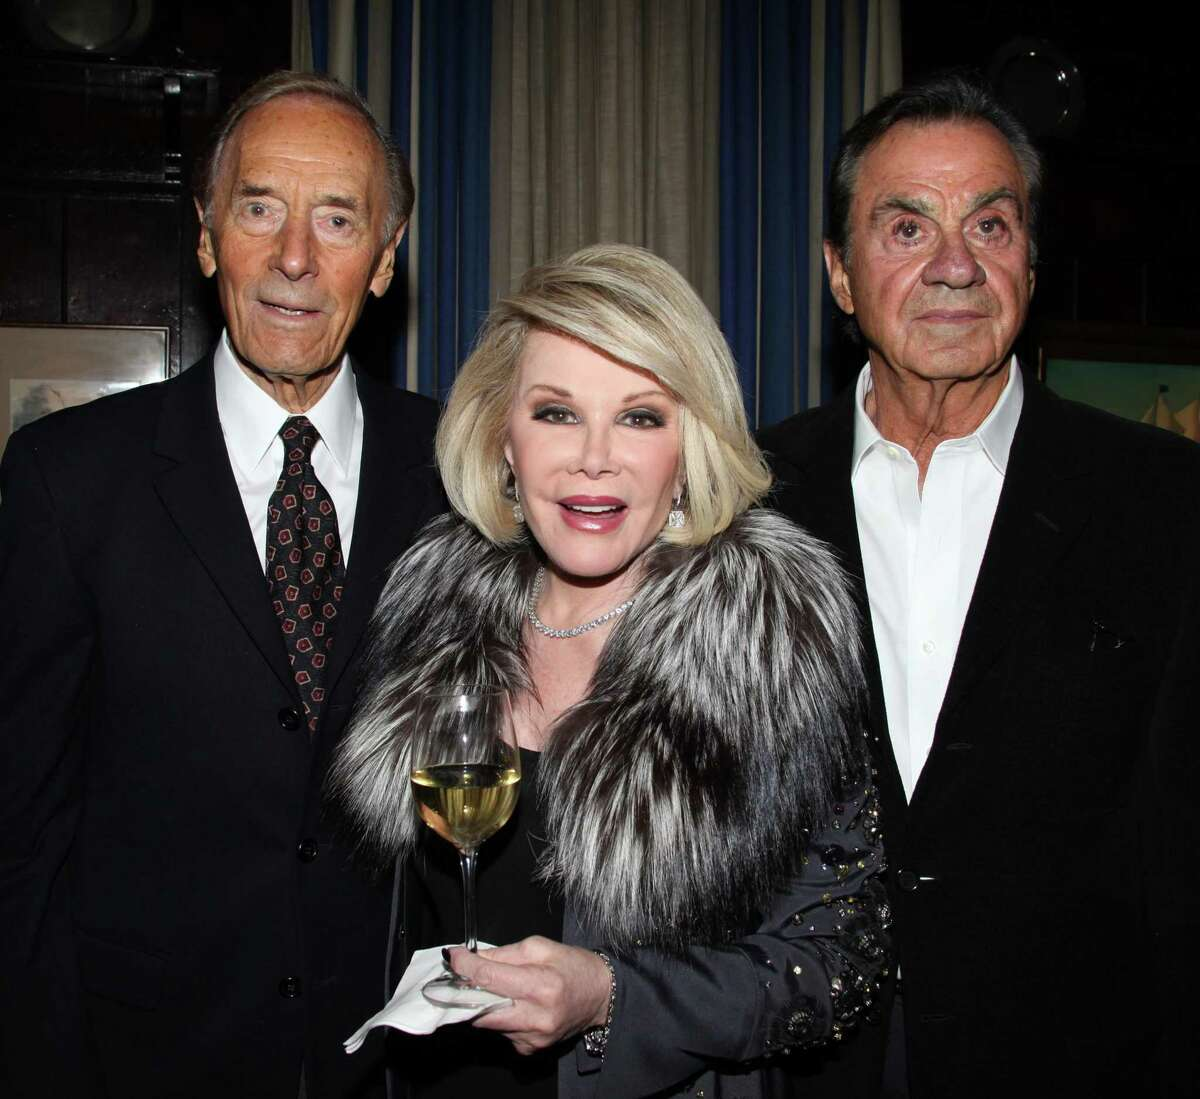 Alan Shayne, left, and his husband Norman Sunshine celebrate with Joan Rivers, who hosted book party for them after an earlier work was published in 2011.